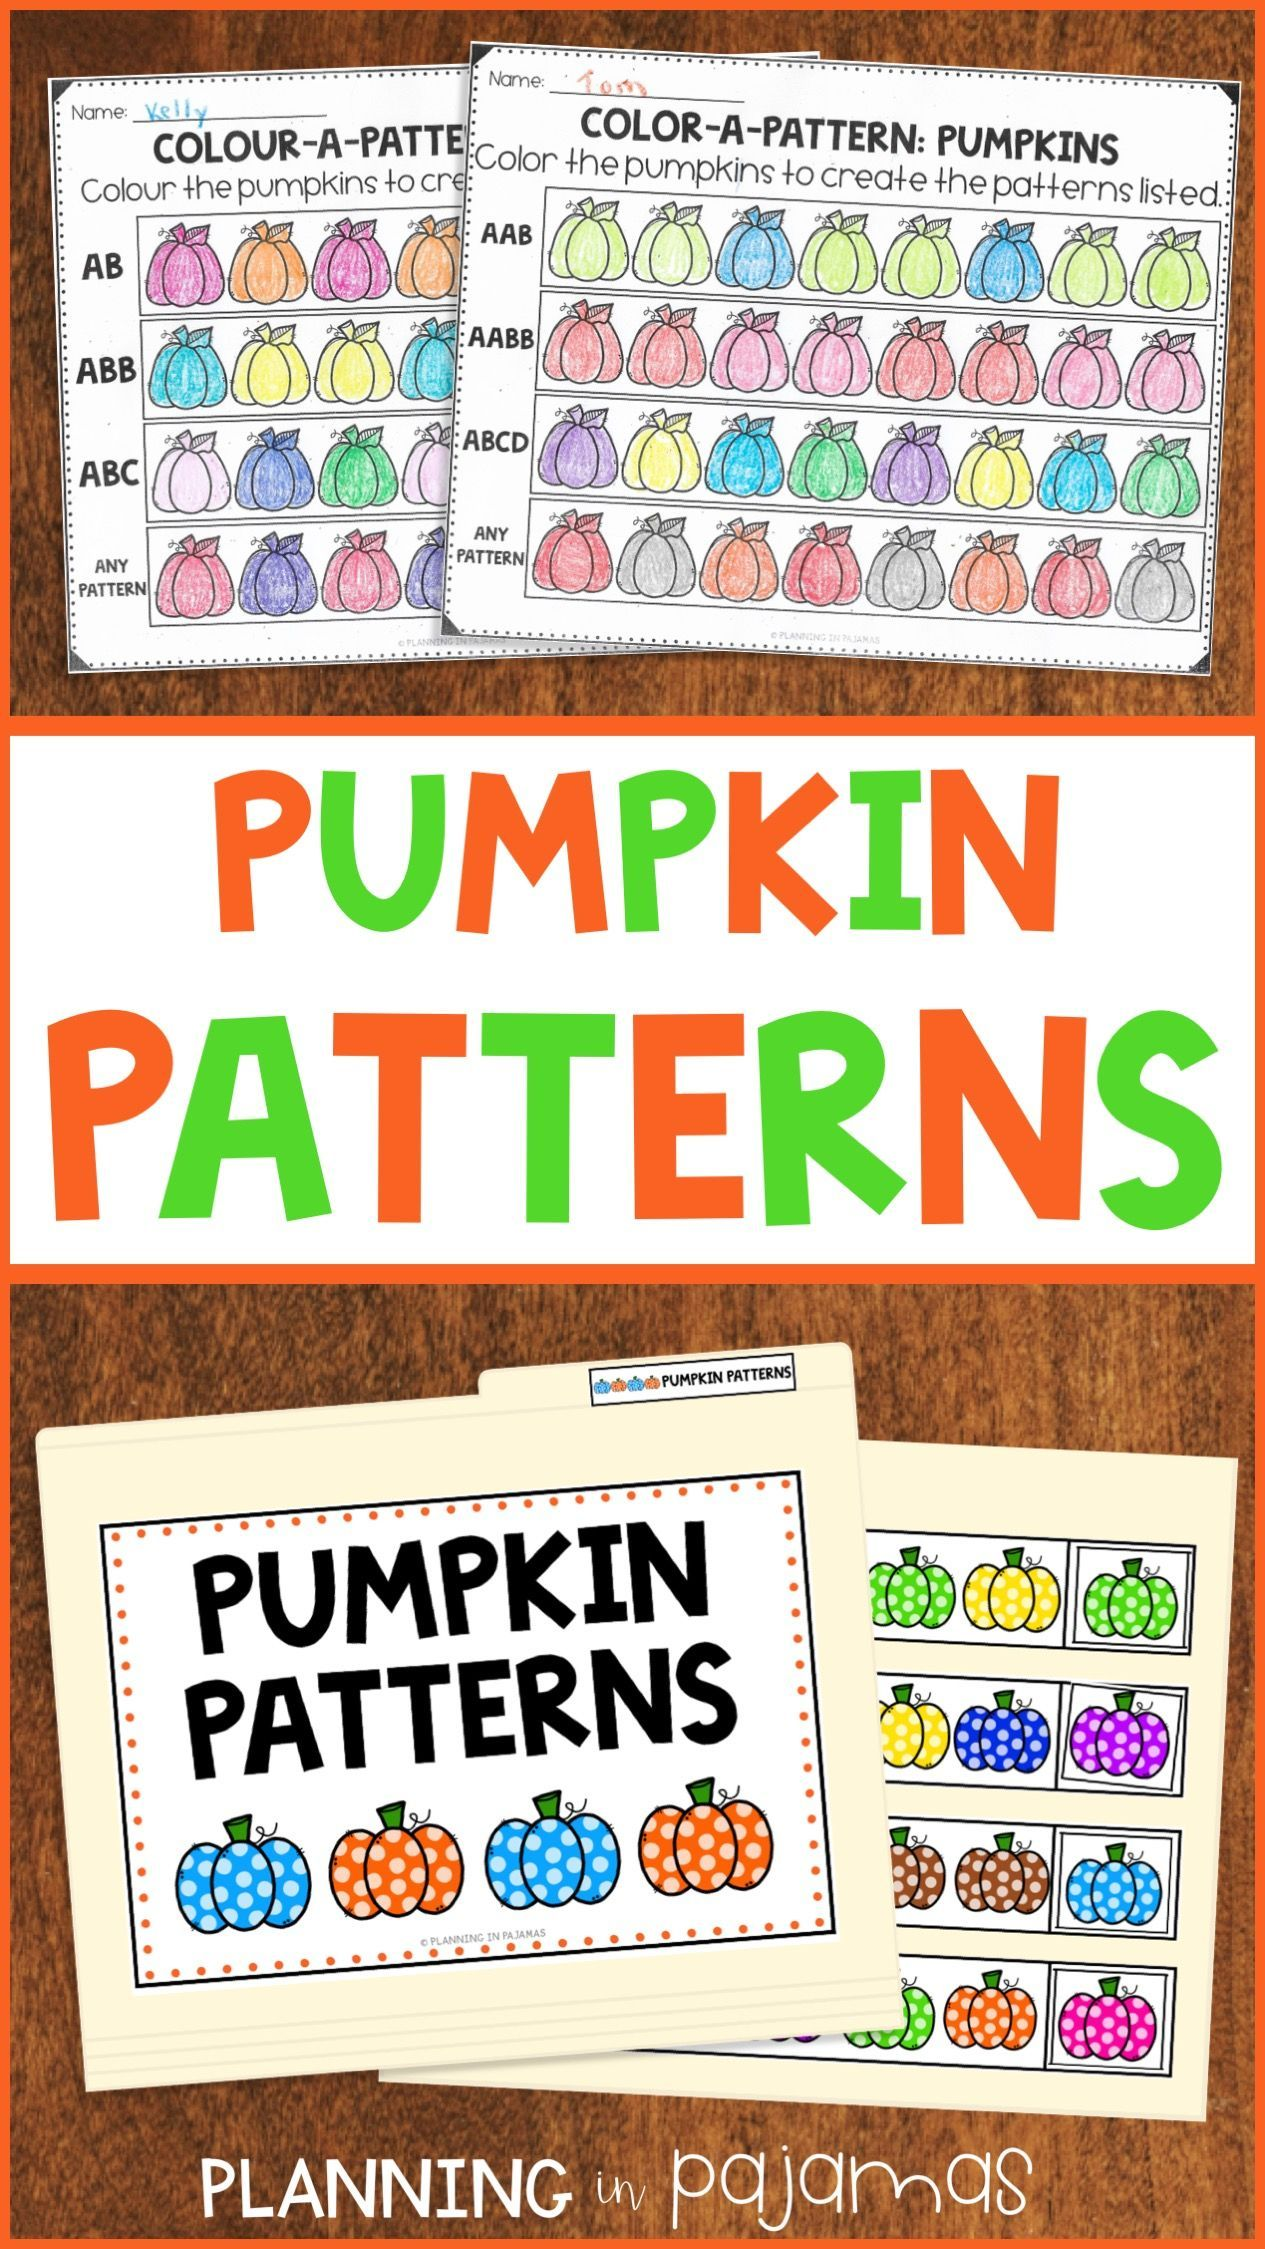 Pumpkin Pattern Activities To Include In A Fall Autumn Or Halloween Theme 2 Worksheets Asking Students To Pumpkin Pattern Pattern Activities File Folder Games [ 2249 x 1265 Pixel ]